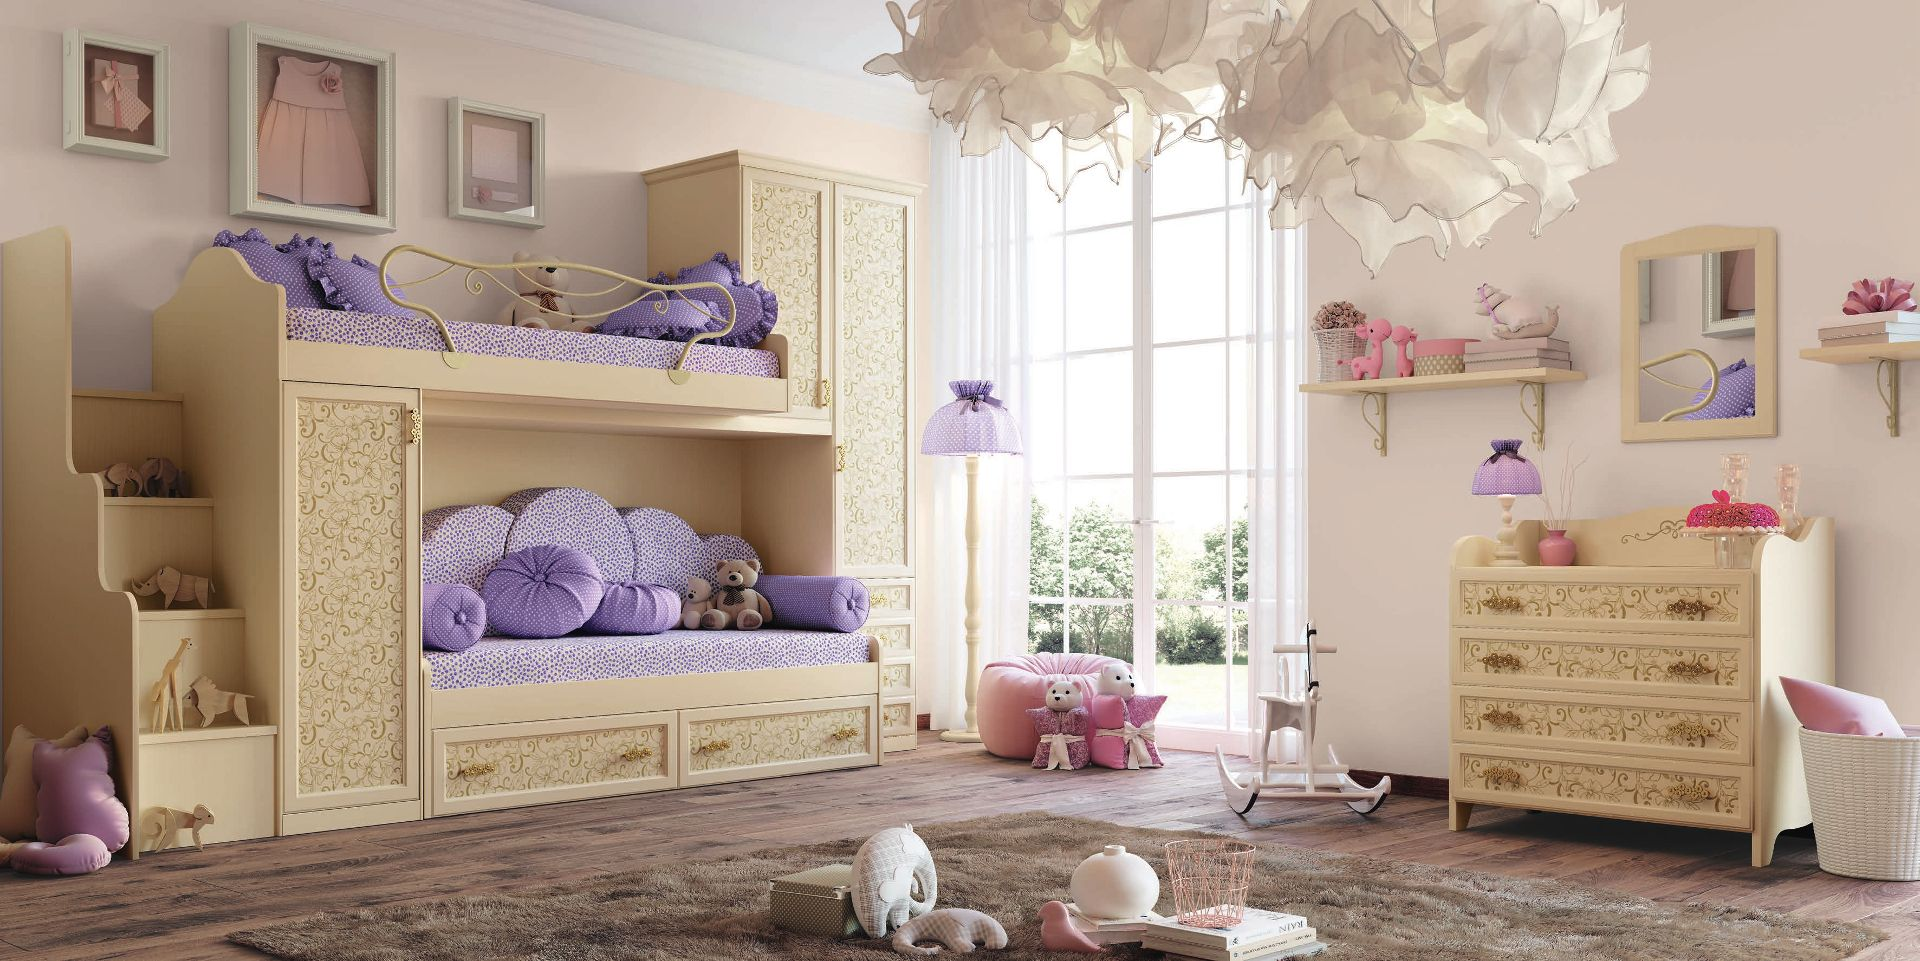 Camerette s ~ Luxury collection by effedue camerette effedue camerette is an